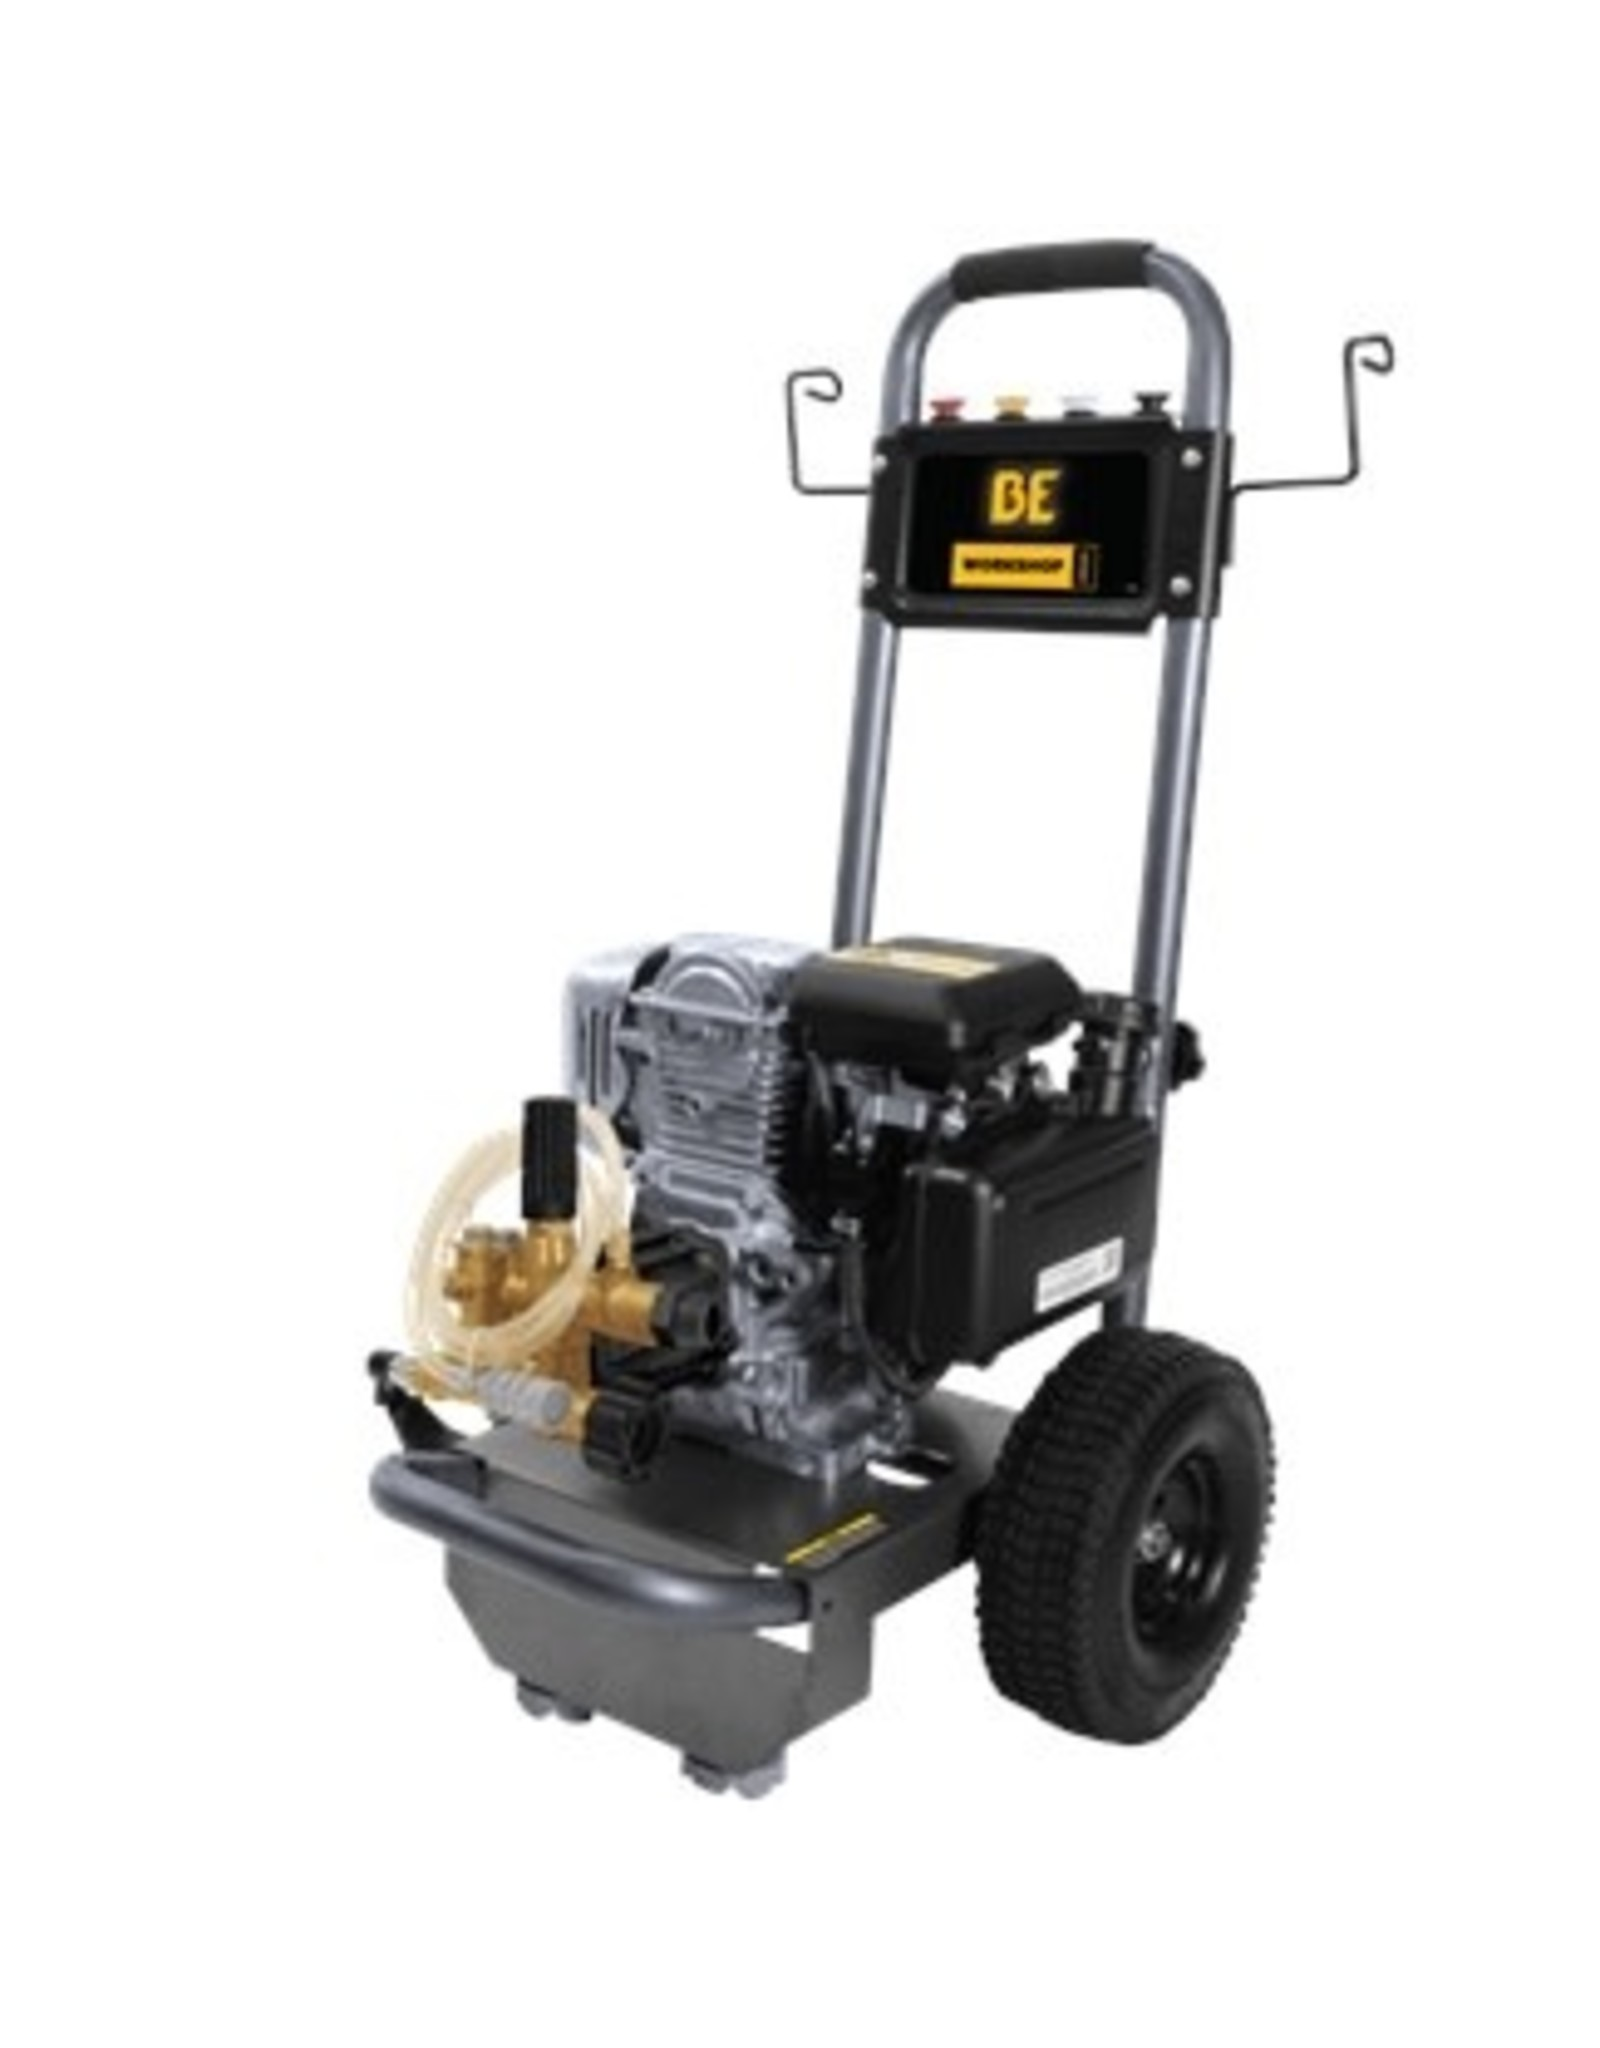 BE B275HAS 160cc 2700 PSI Pressure Washer